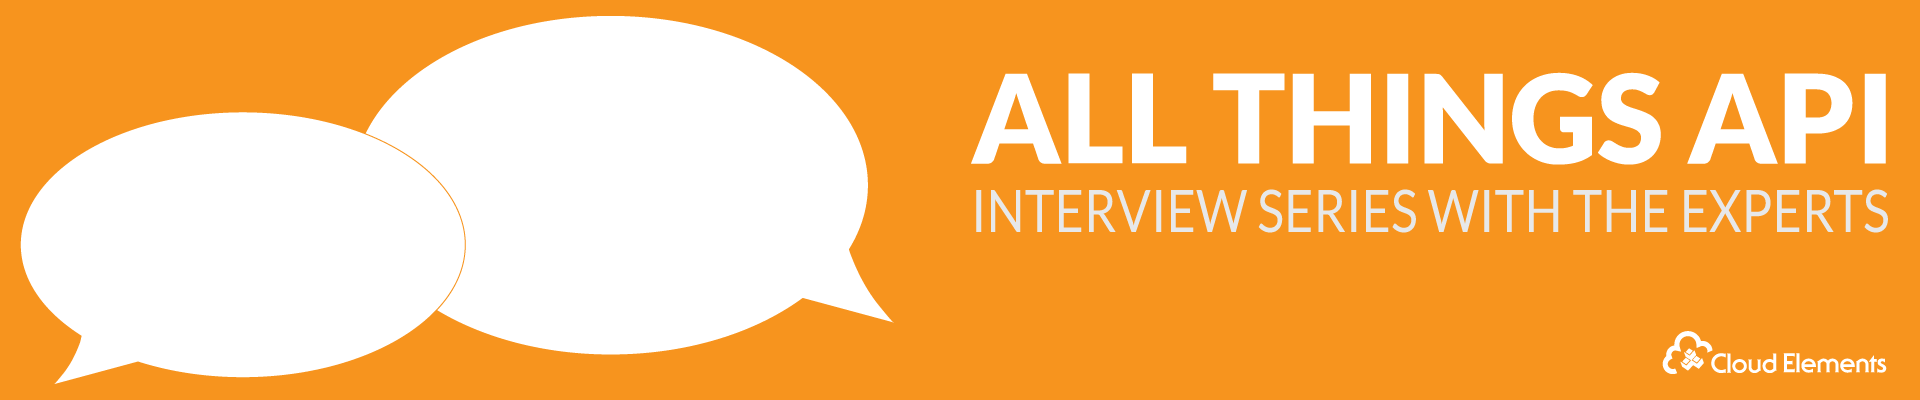 all-things-api-interviews-banner